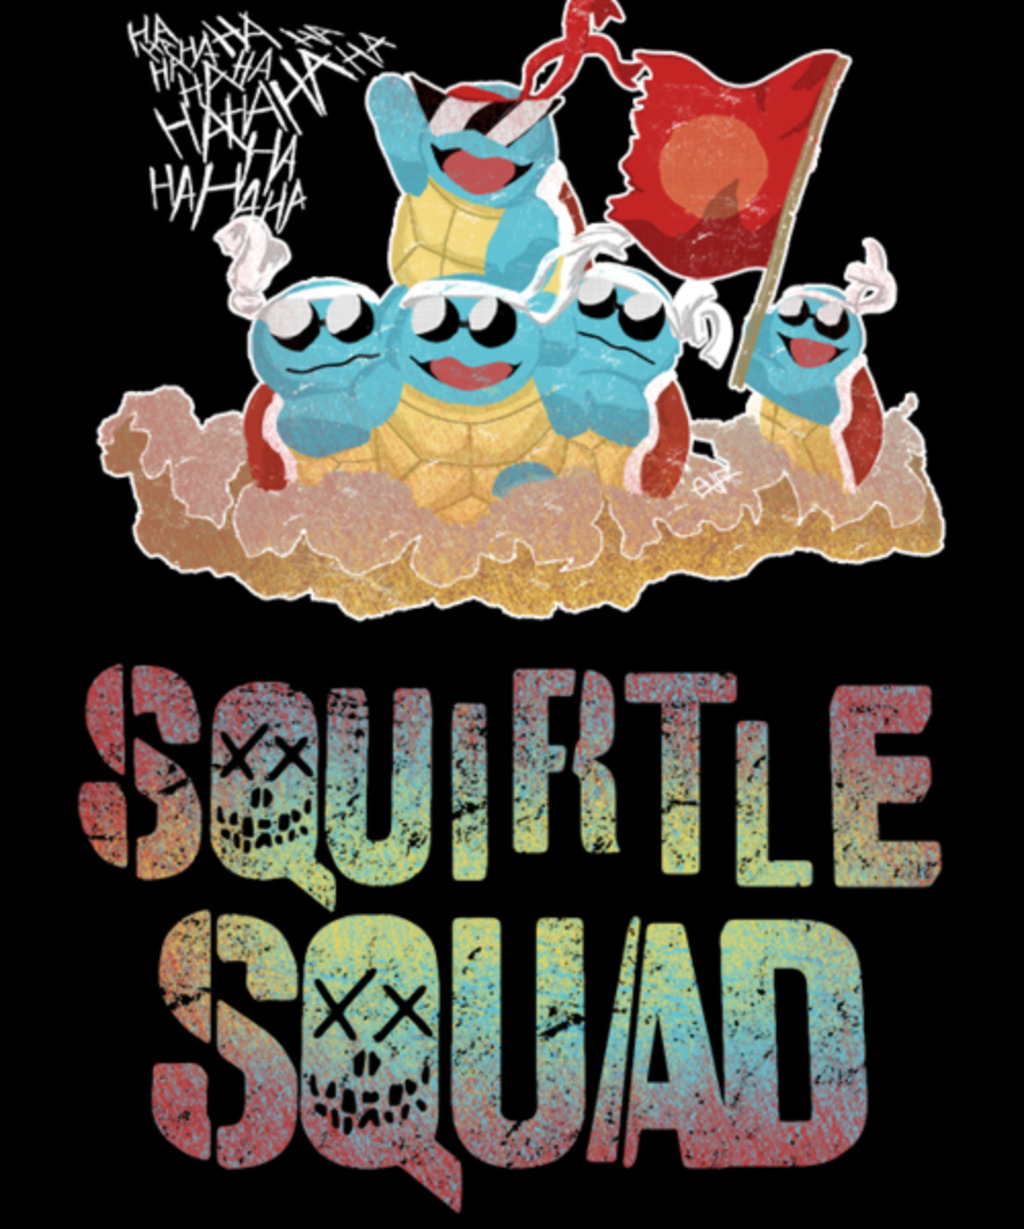 Qwertee: Squirtle Squad